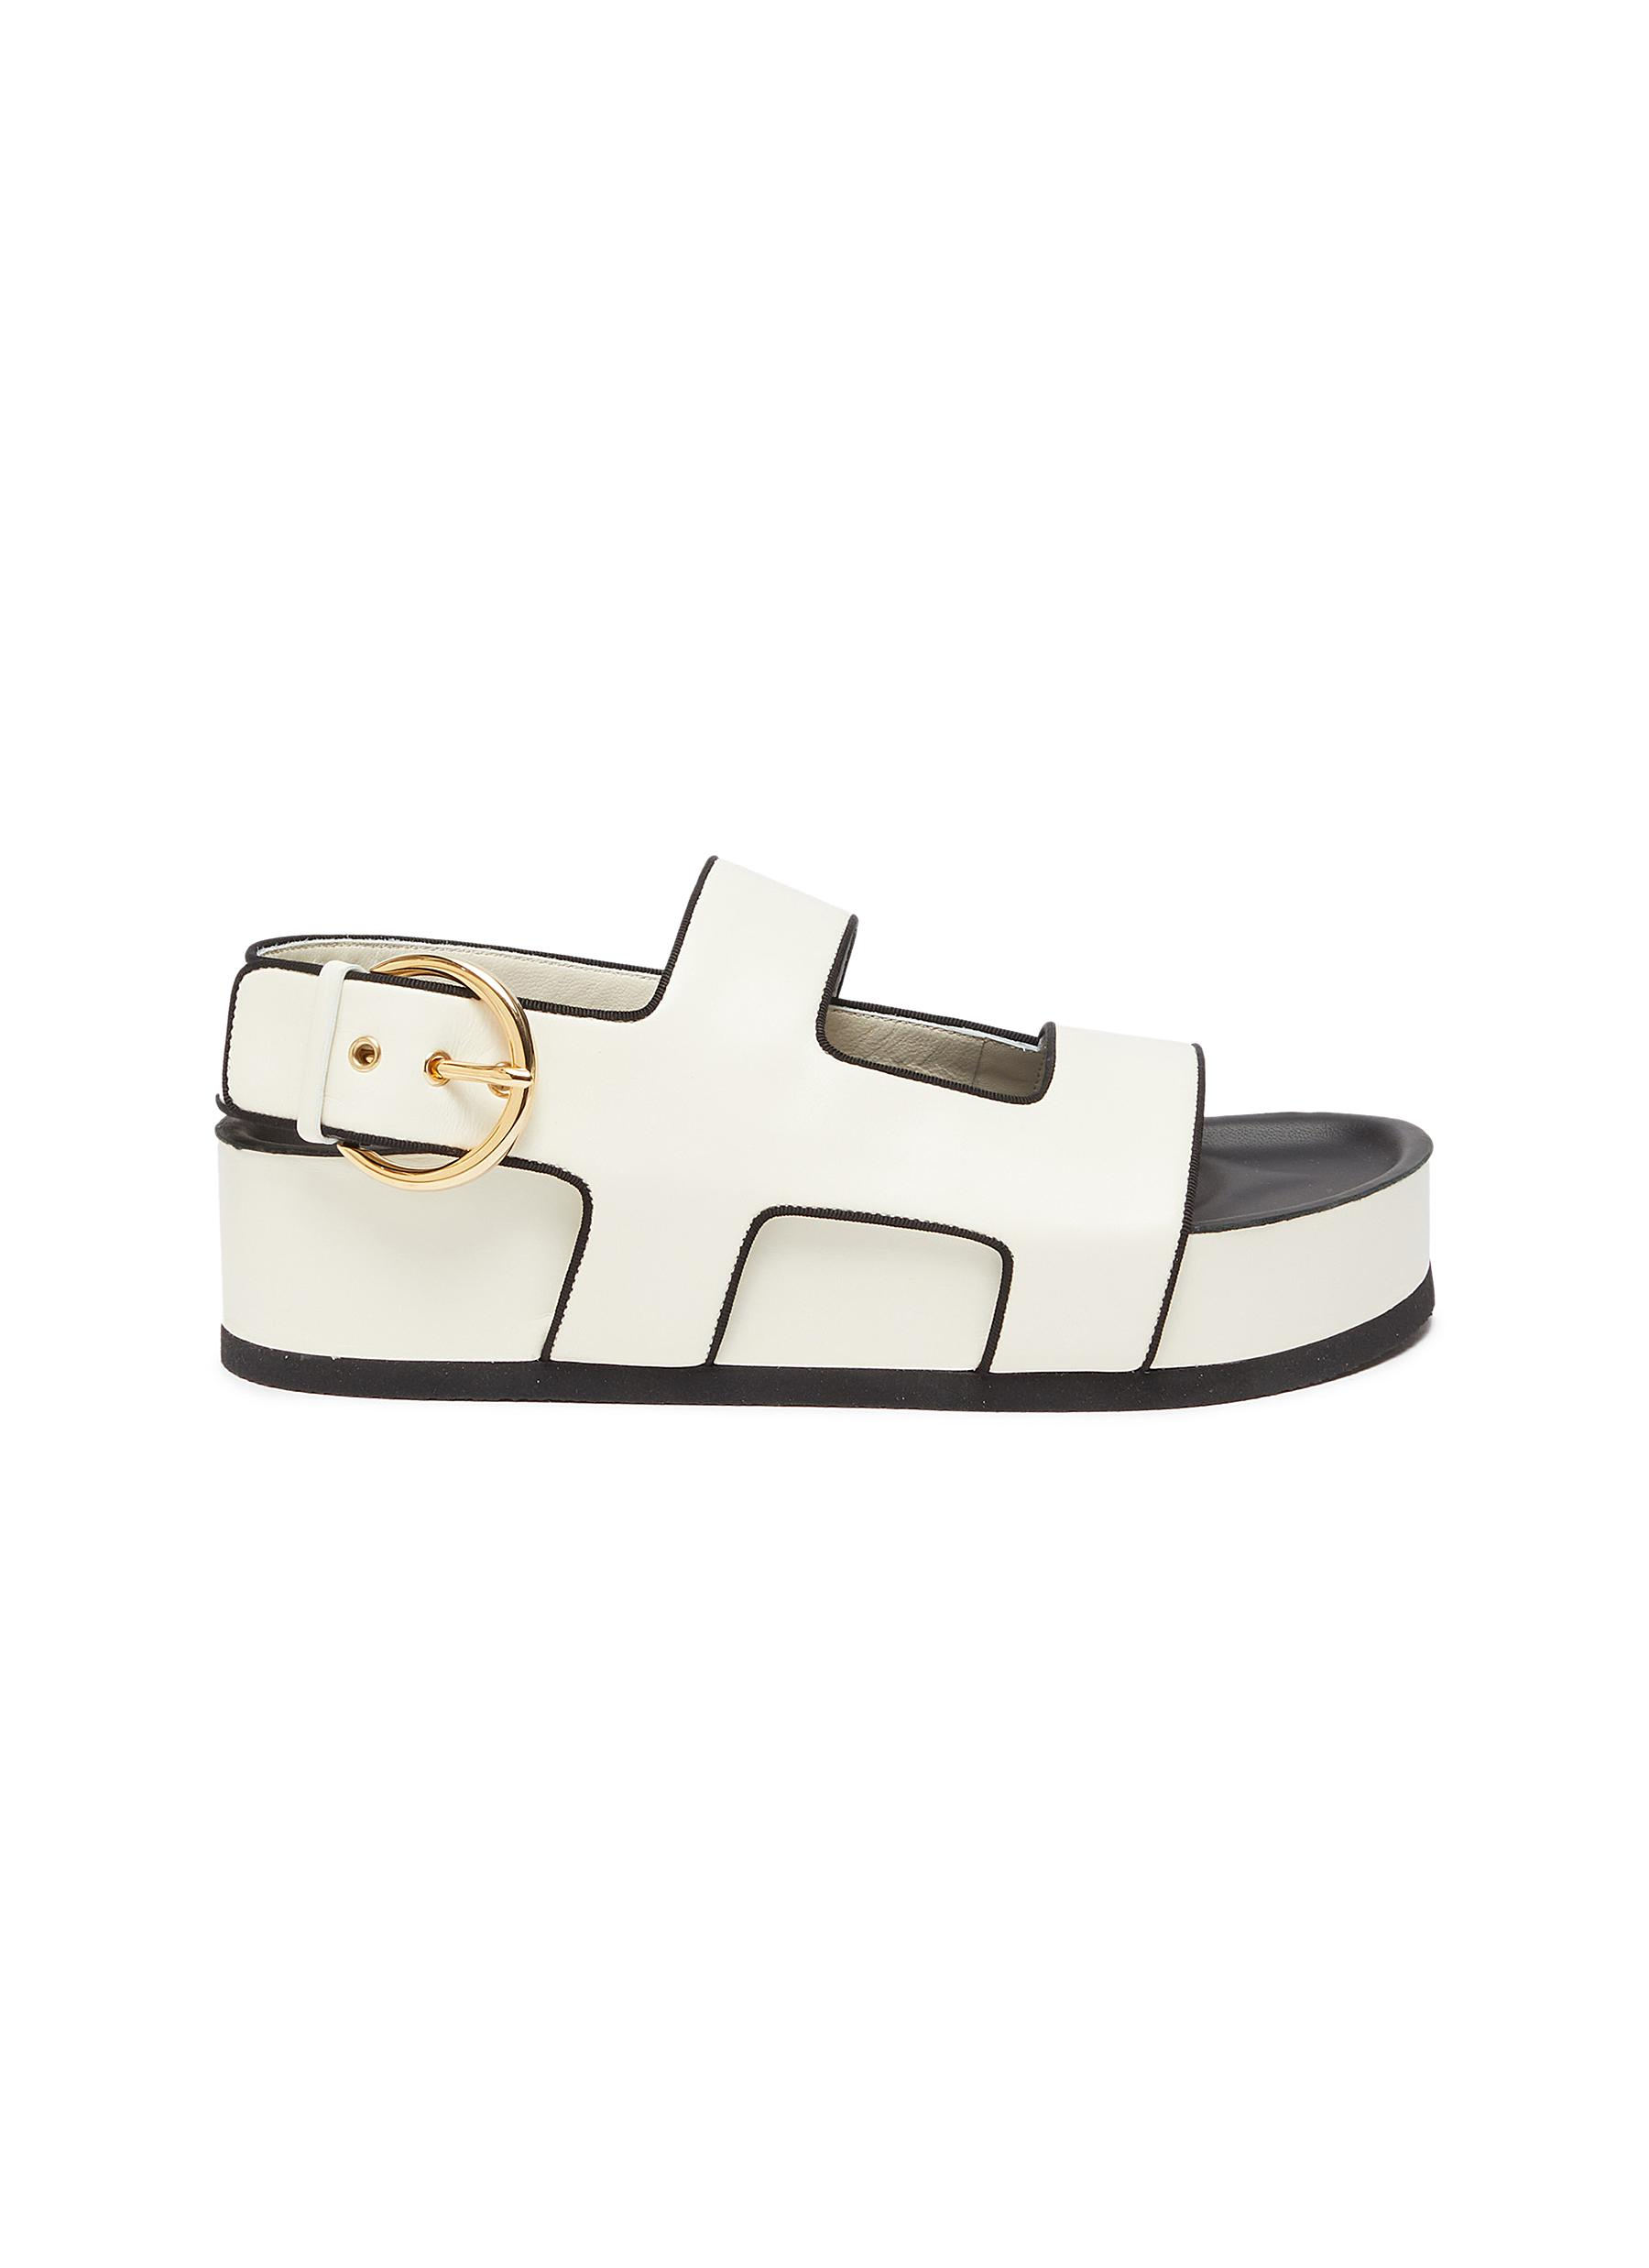 Neous 'CHER' RING BUCKLE PLATFORM LEATHER SANDALS